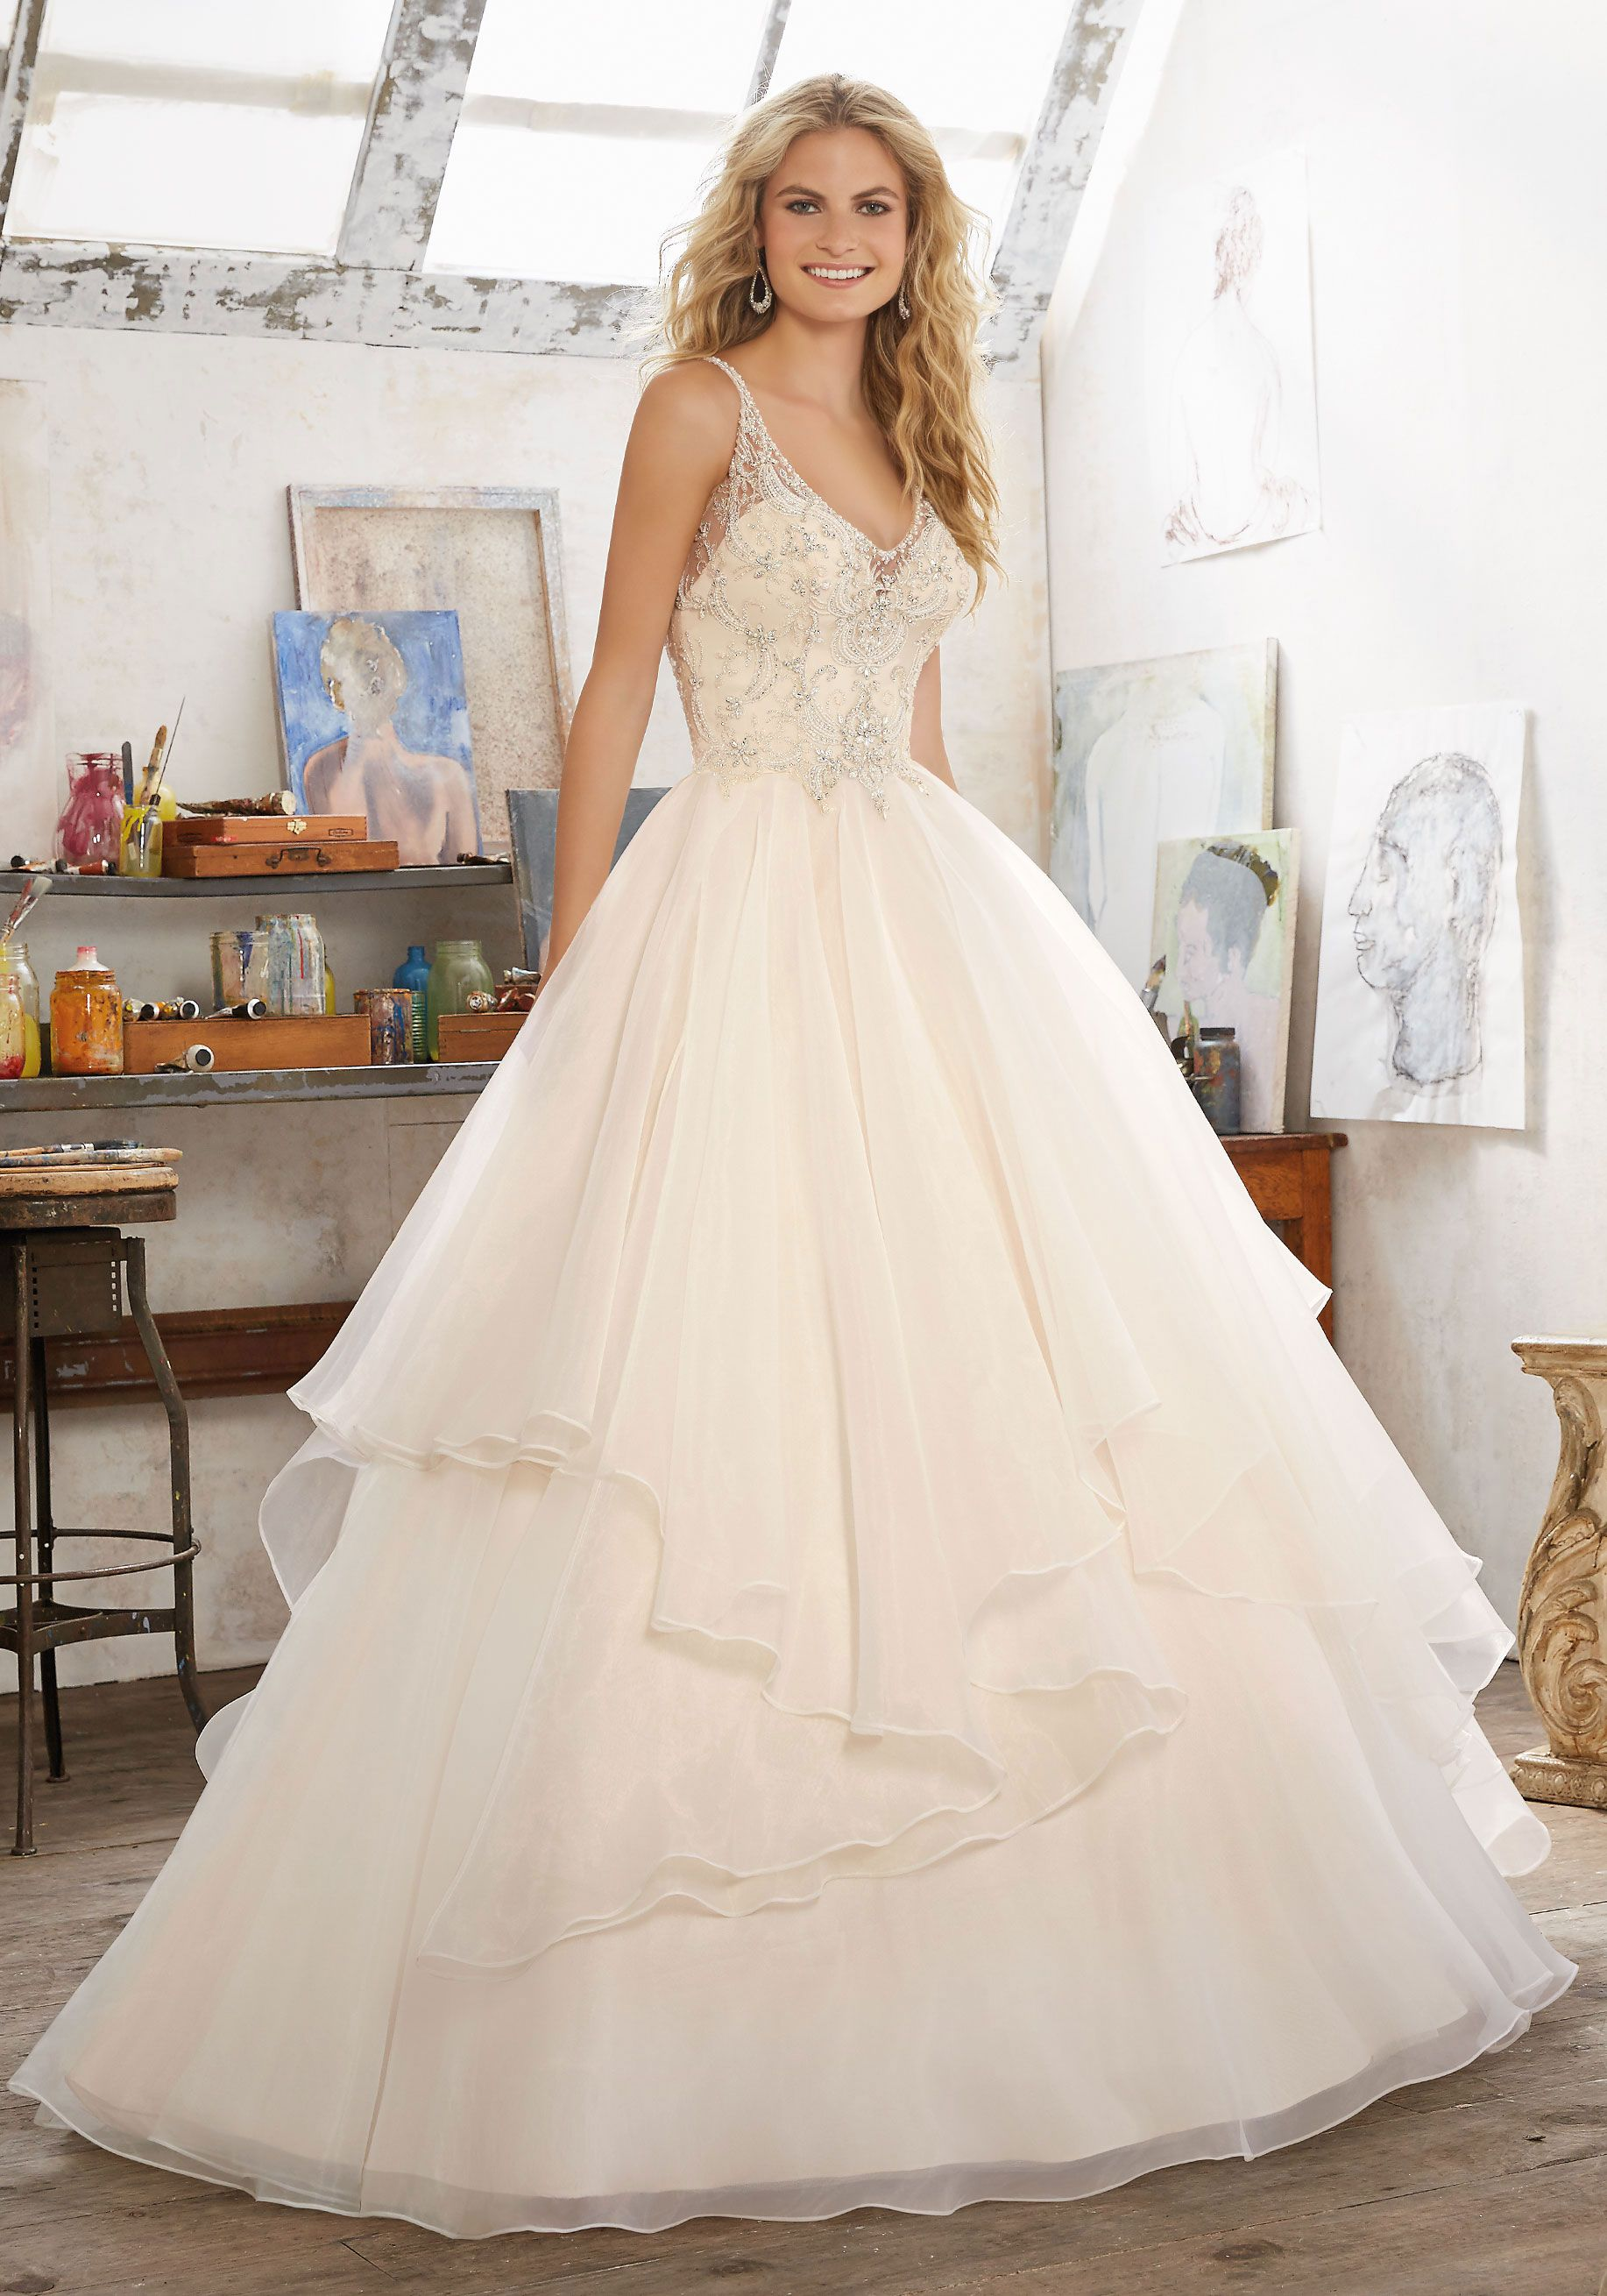 Fancy Morilee by Madeline Gardner uMadison u Romantic Bridal Ballgown Features Crystal Beaded Embroidery